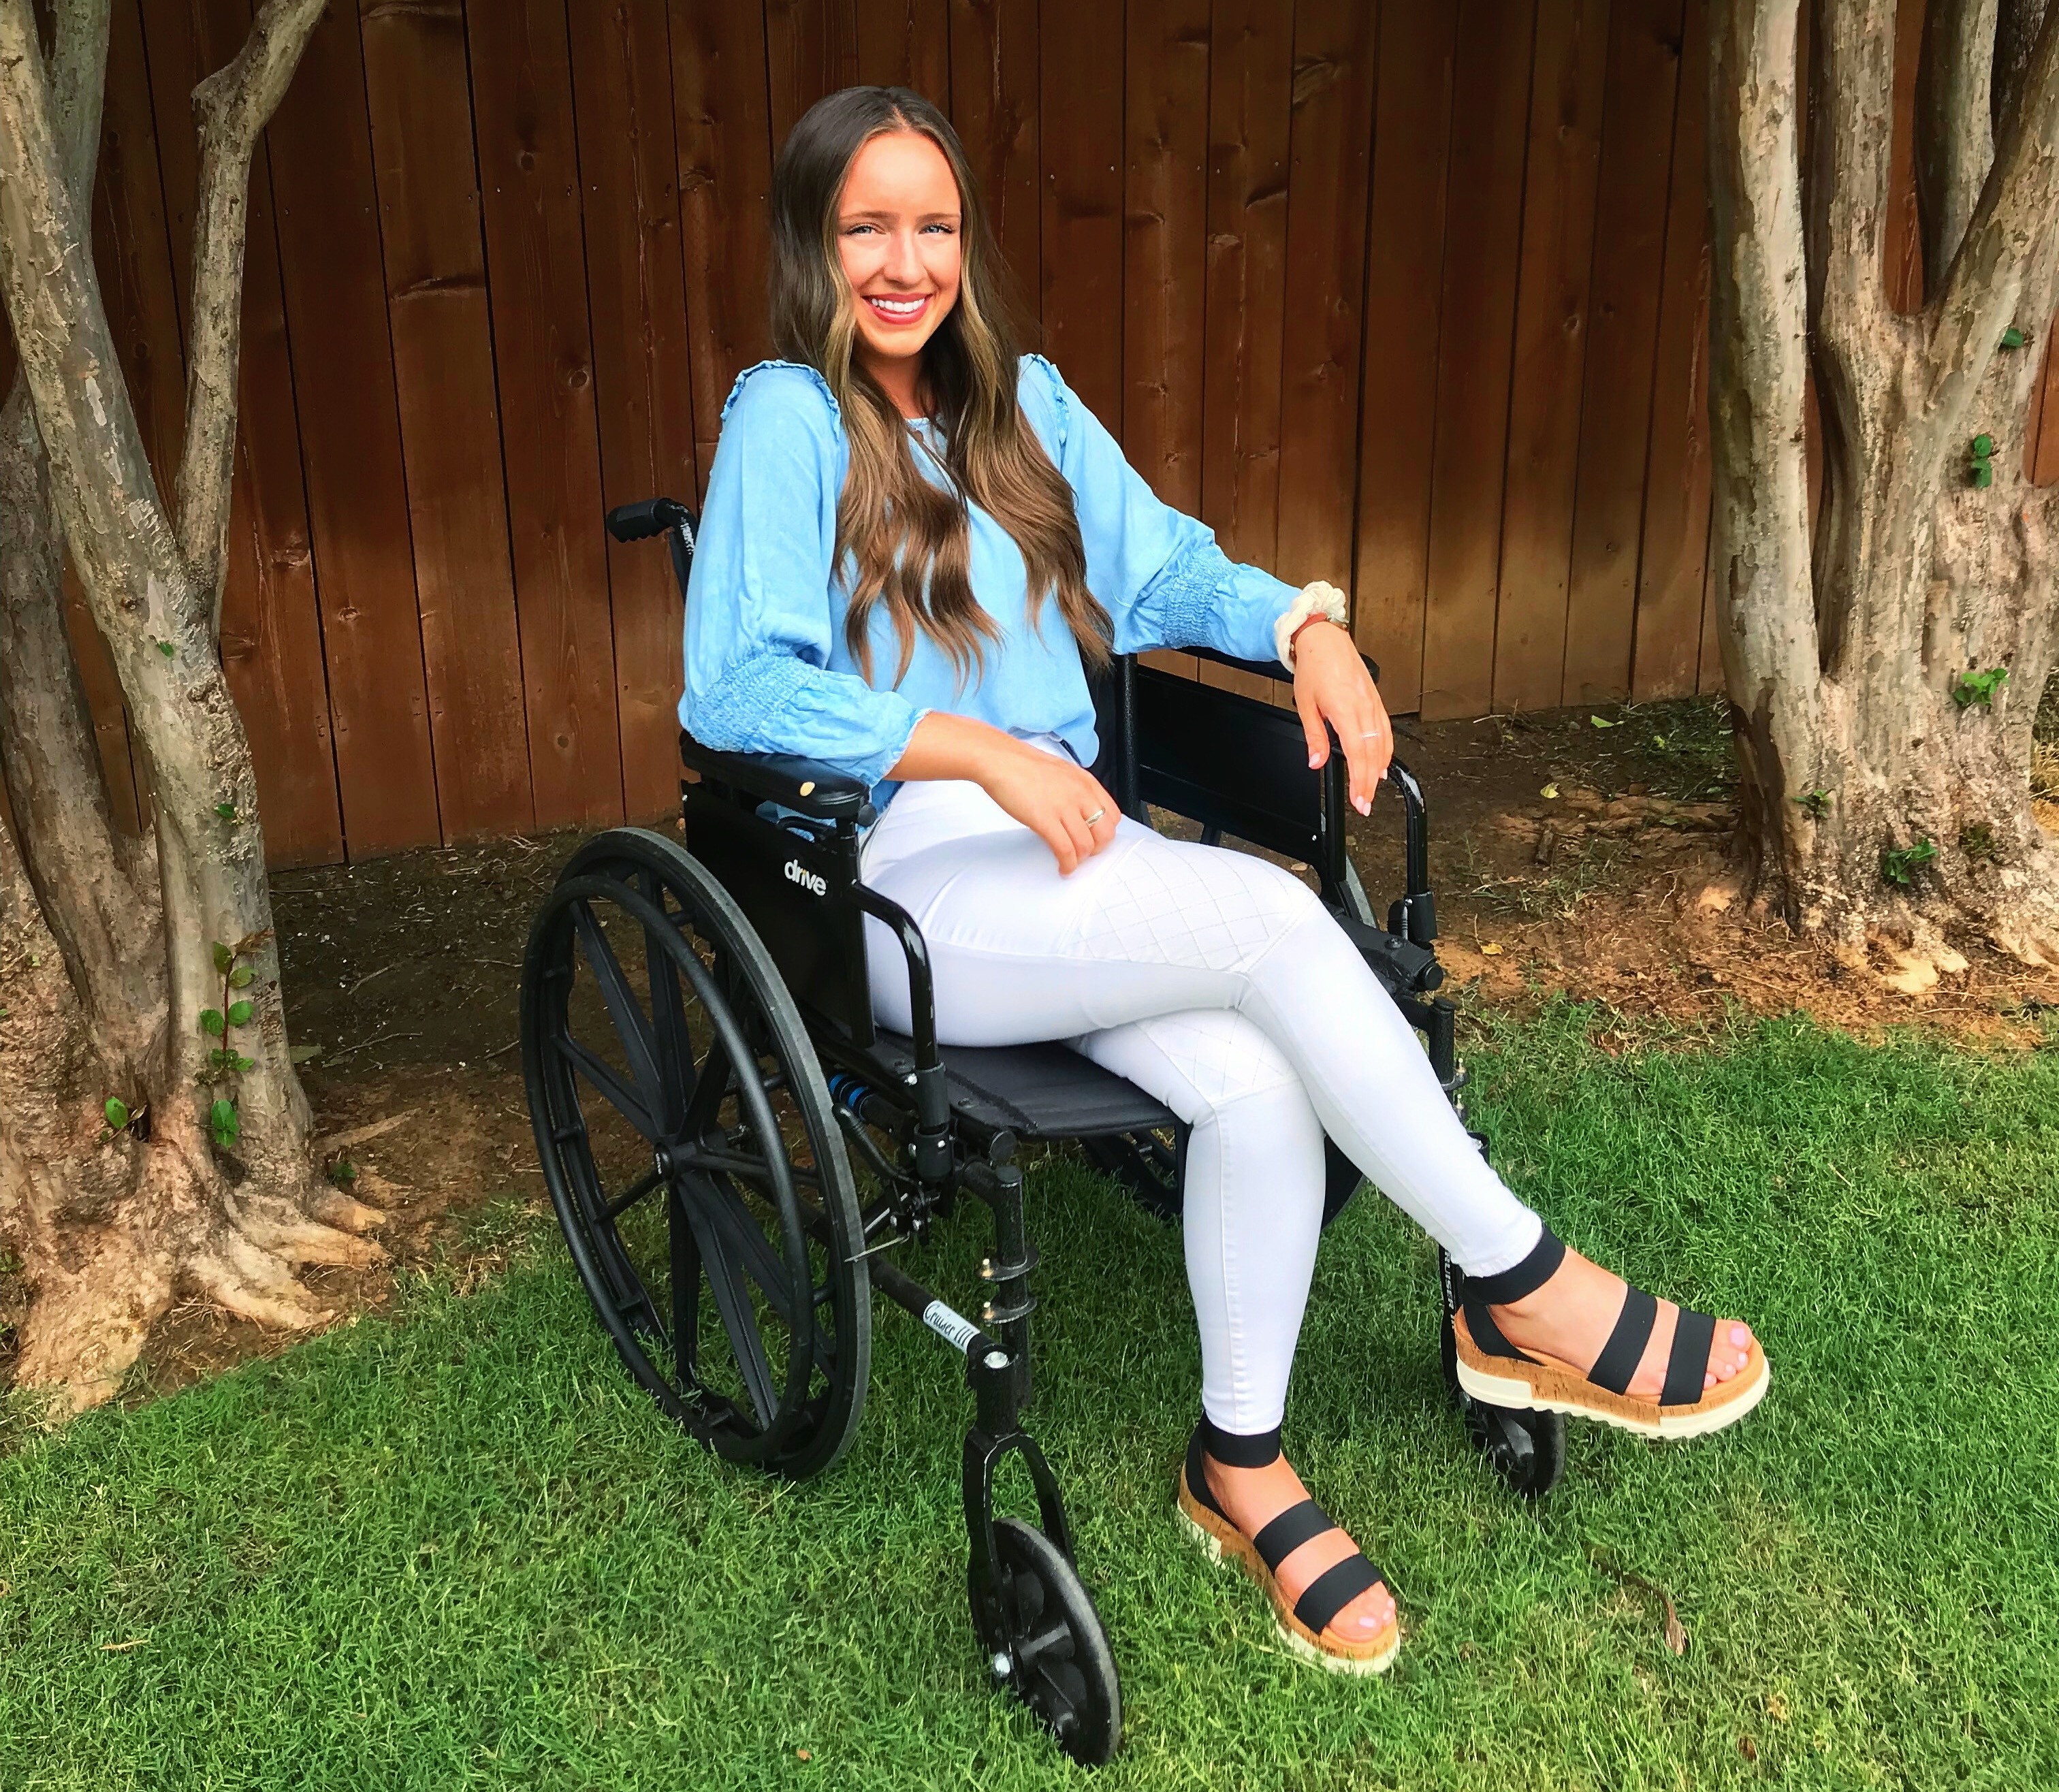 Monique McDown in a wheelchair following an accident which left her right leg paralyzed while she was serving a full time mission in Brazil.